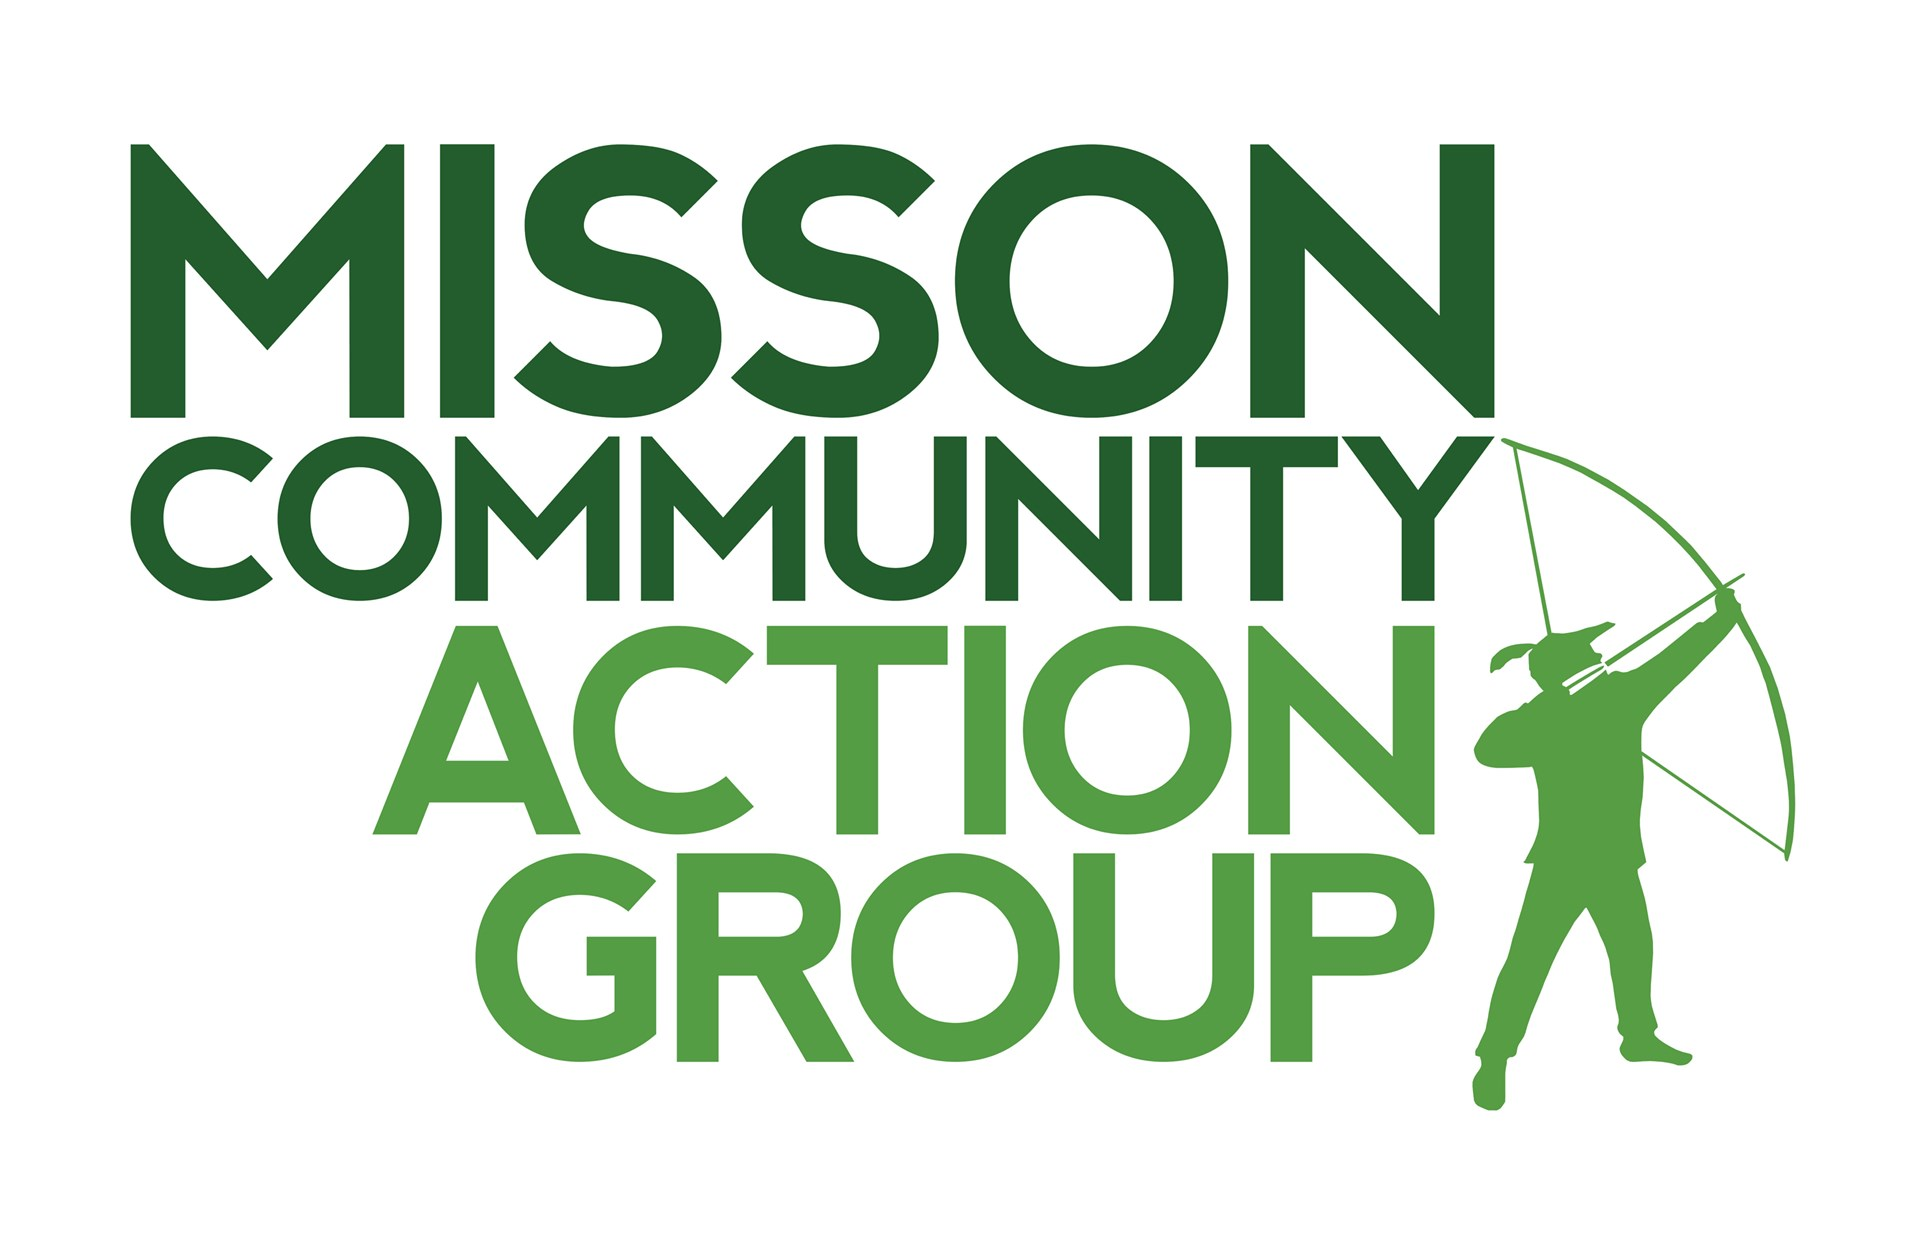 Misson Parish Council Misson Comm. Action Group